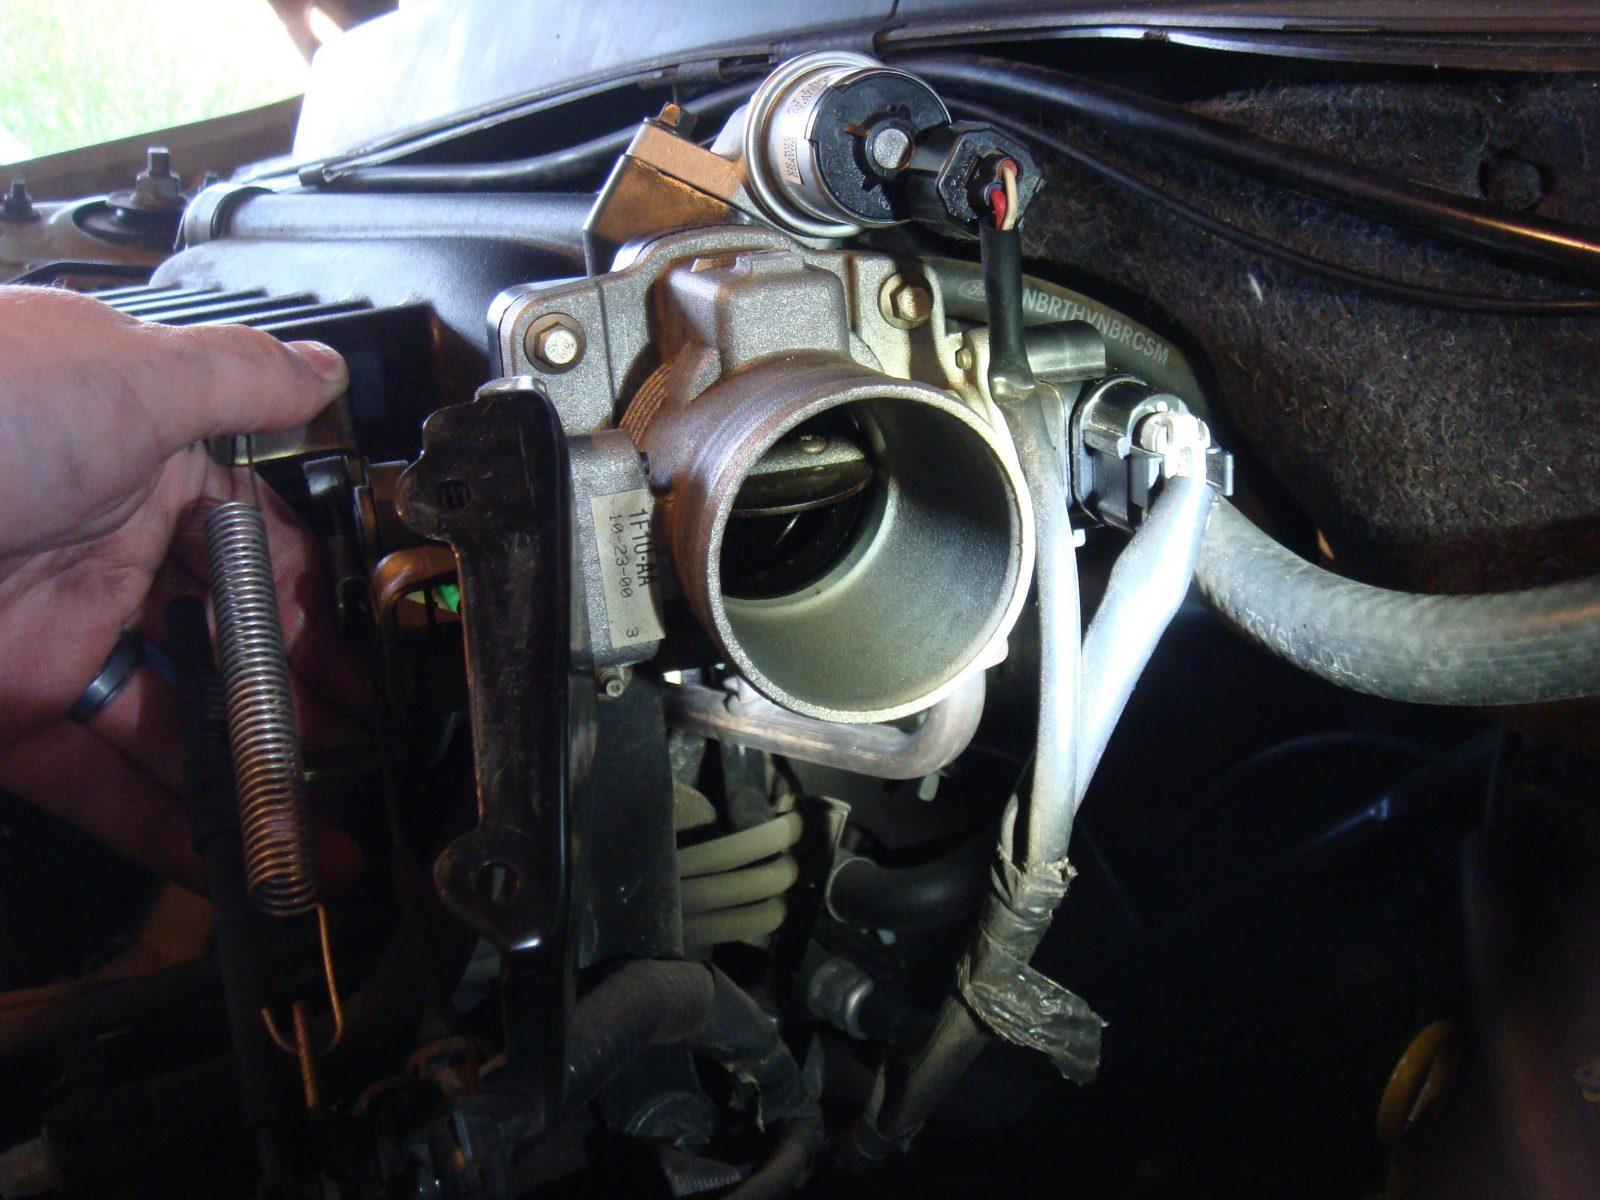 Throttle Position Sensor Symptoms- Ways to Find A Faulty One